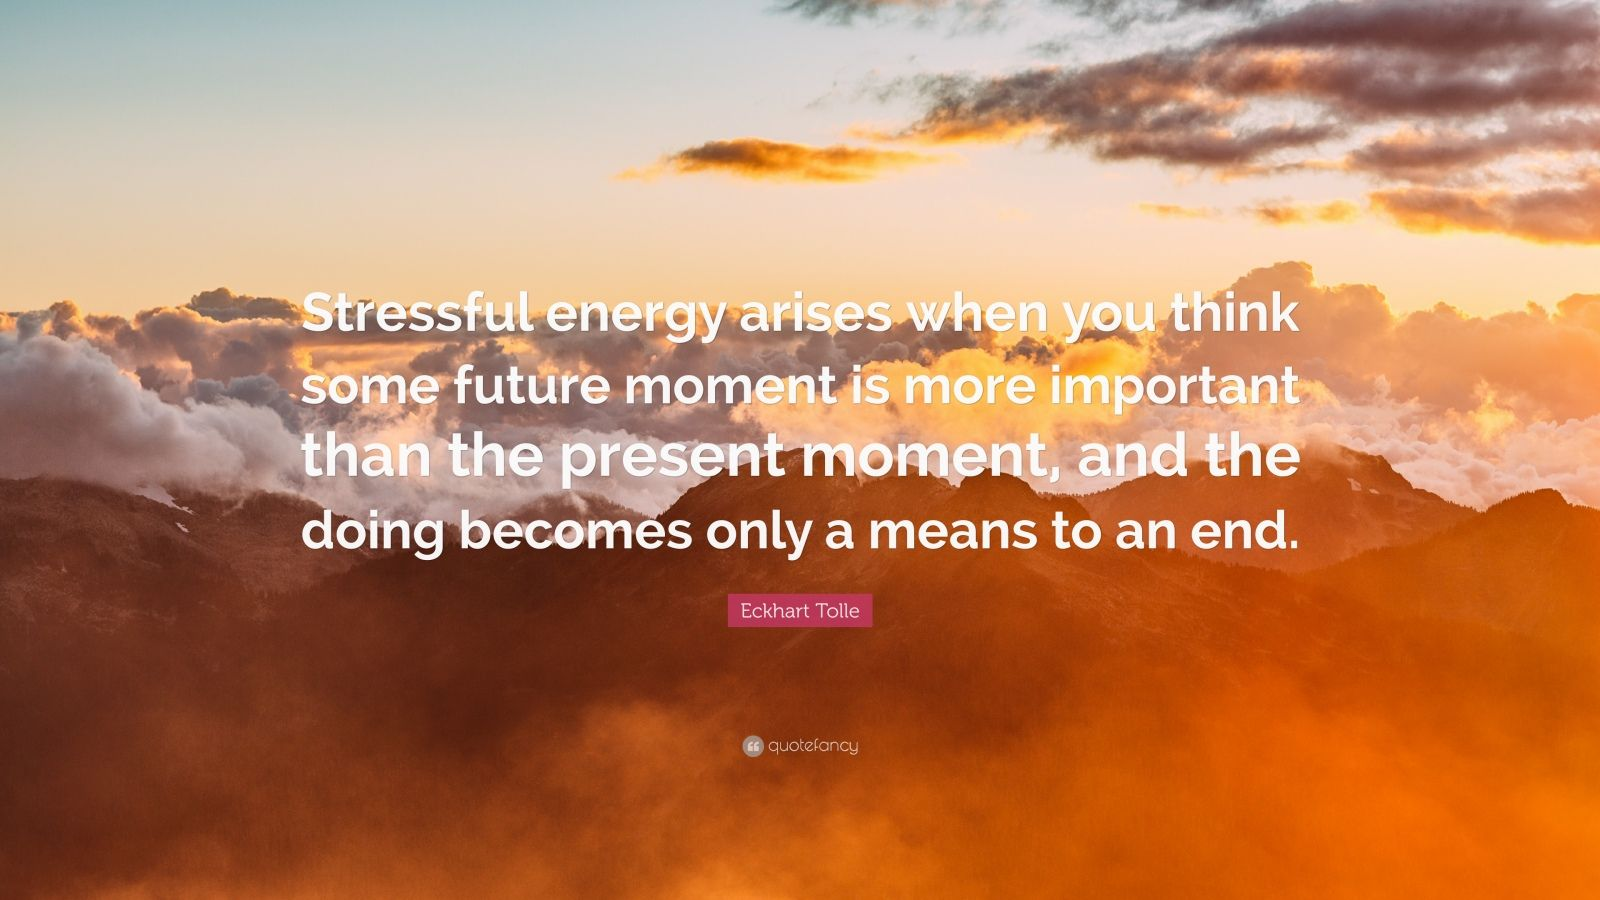 "Eckhart Tolle Quote: ""Stressful energy arises when you think some future moment is more important than the present moment, and the doing becomes only a means to an end."""